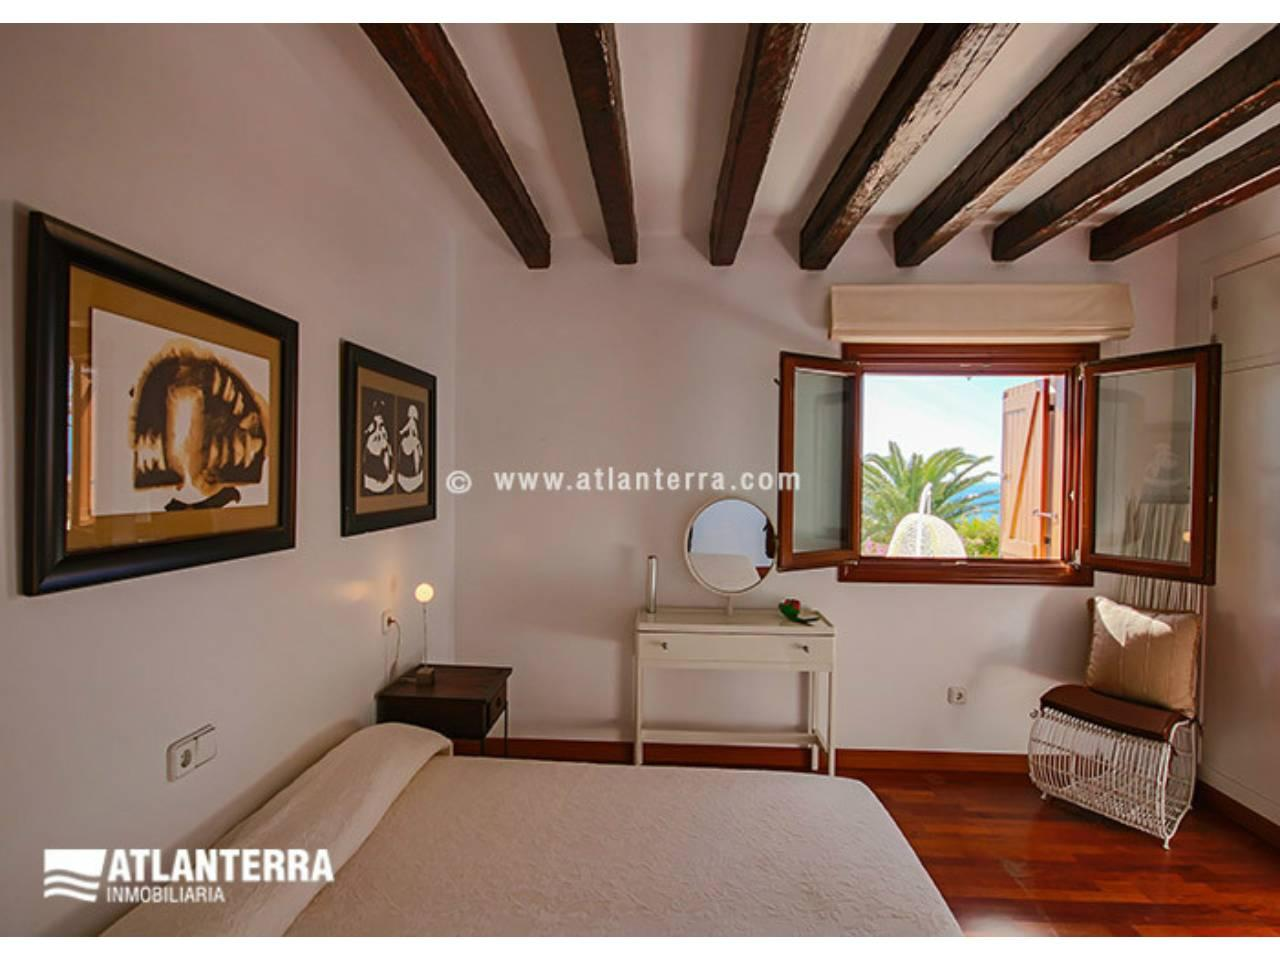 25885350 3170057 foto 748588 - Rustic style, privacy and wonderful views in this villa in Zahara de los Atunes (Cádiz)